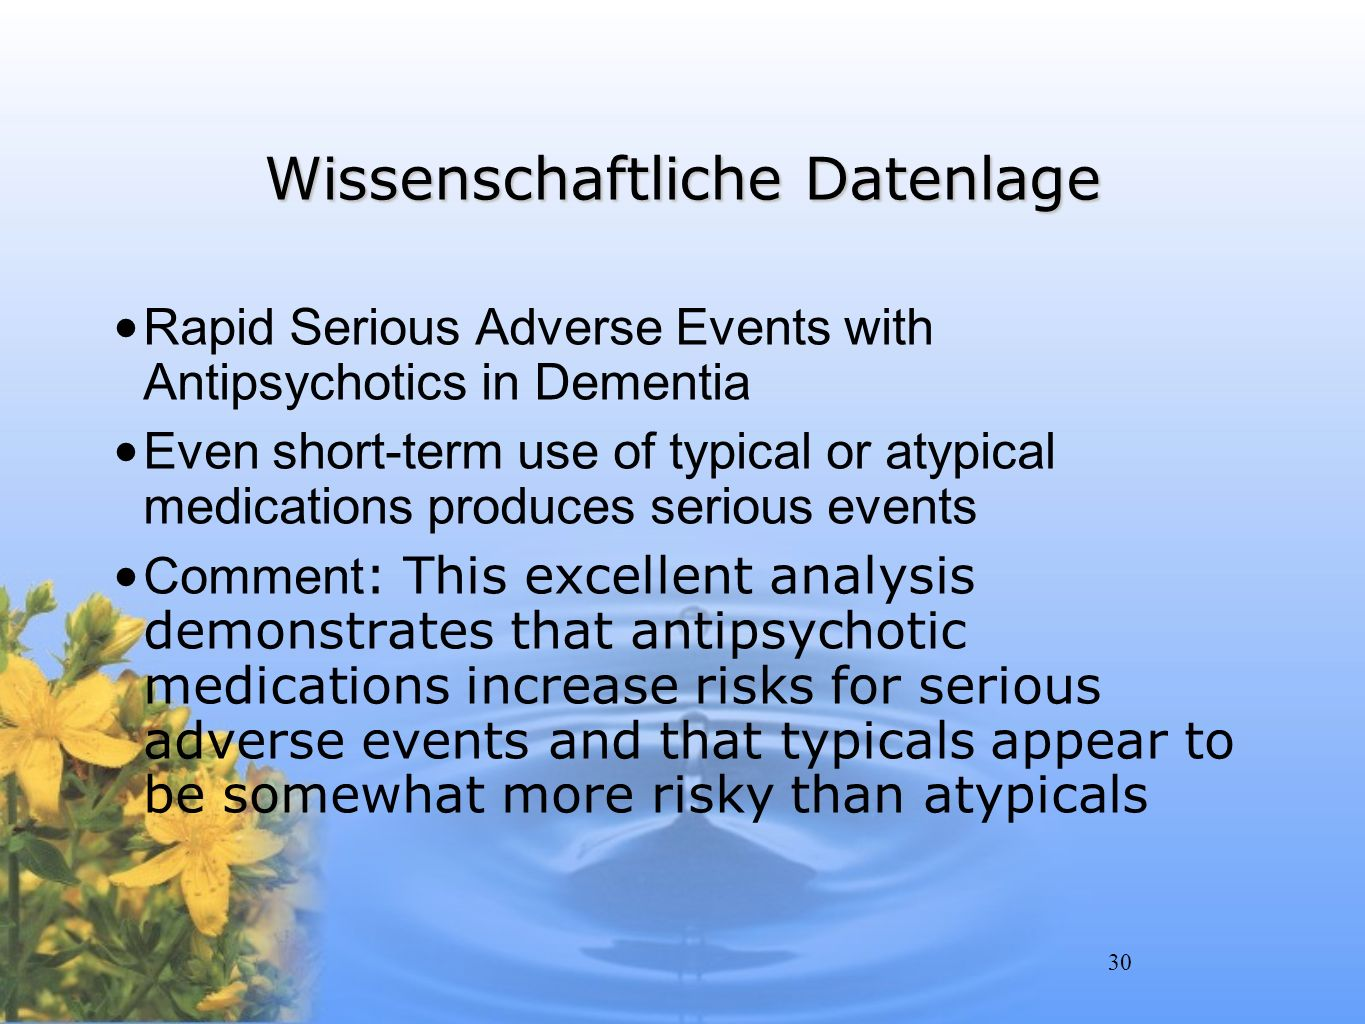 30 Wissenschaftliche Datenlage Rapid Serious Adverse Events with Antipsychotics in Dementia Even short-term use of typical or atypical medications pro